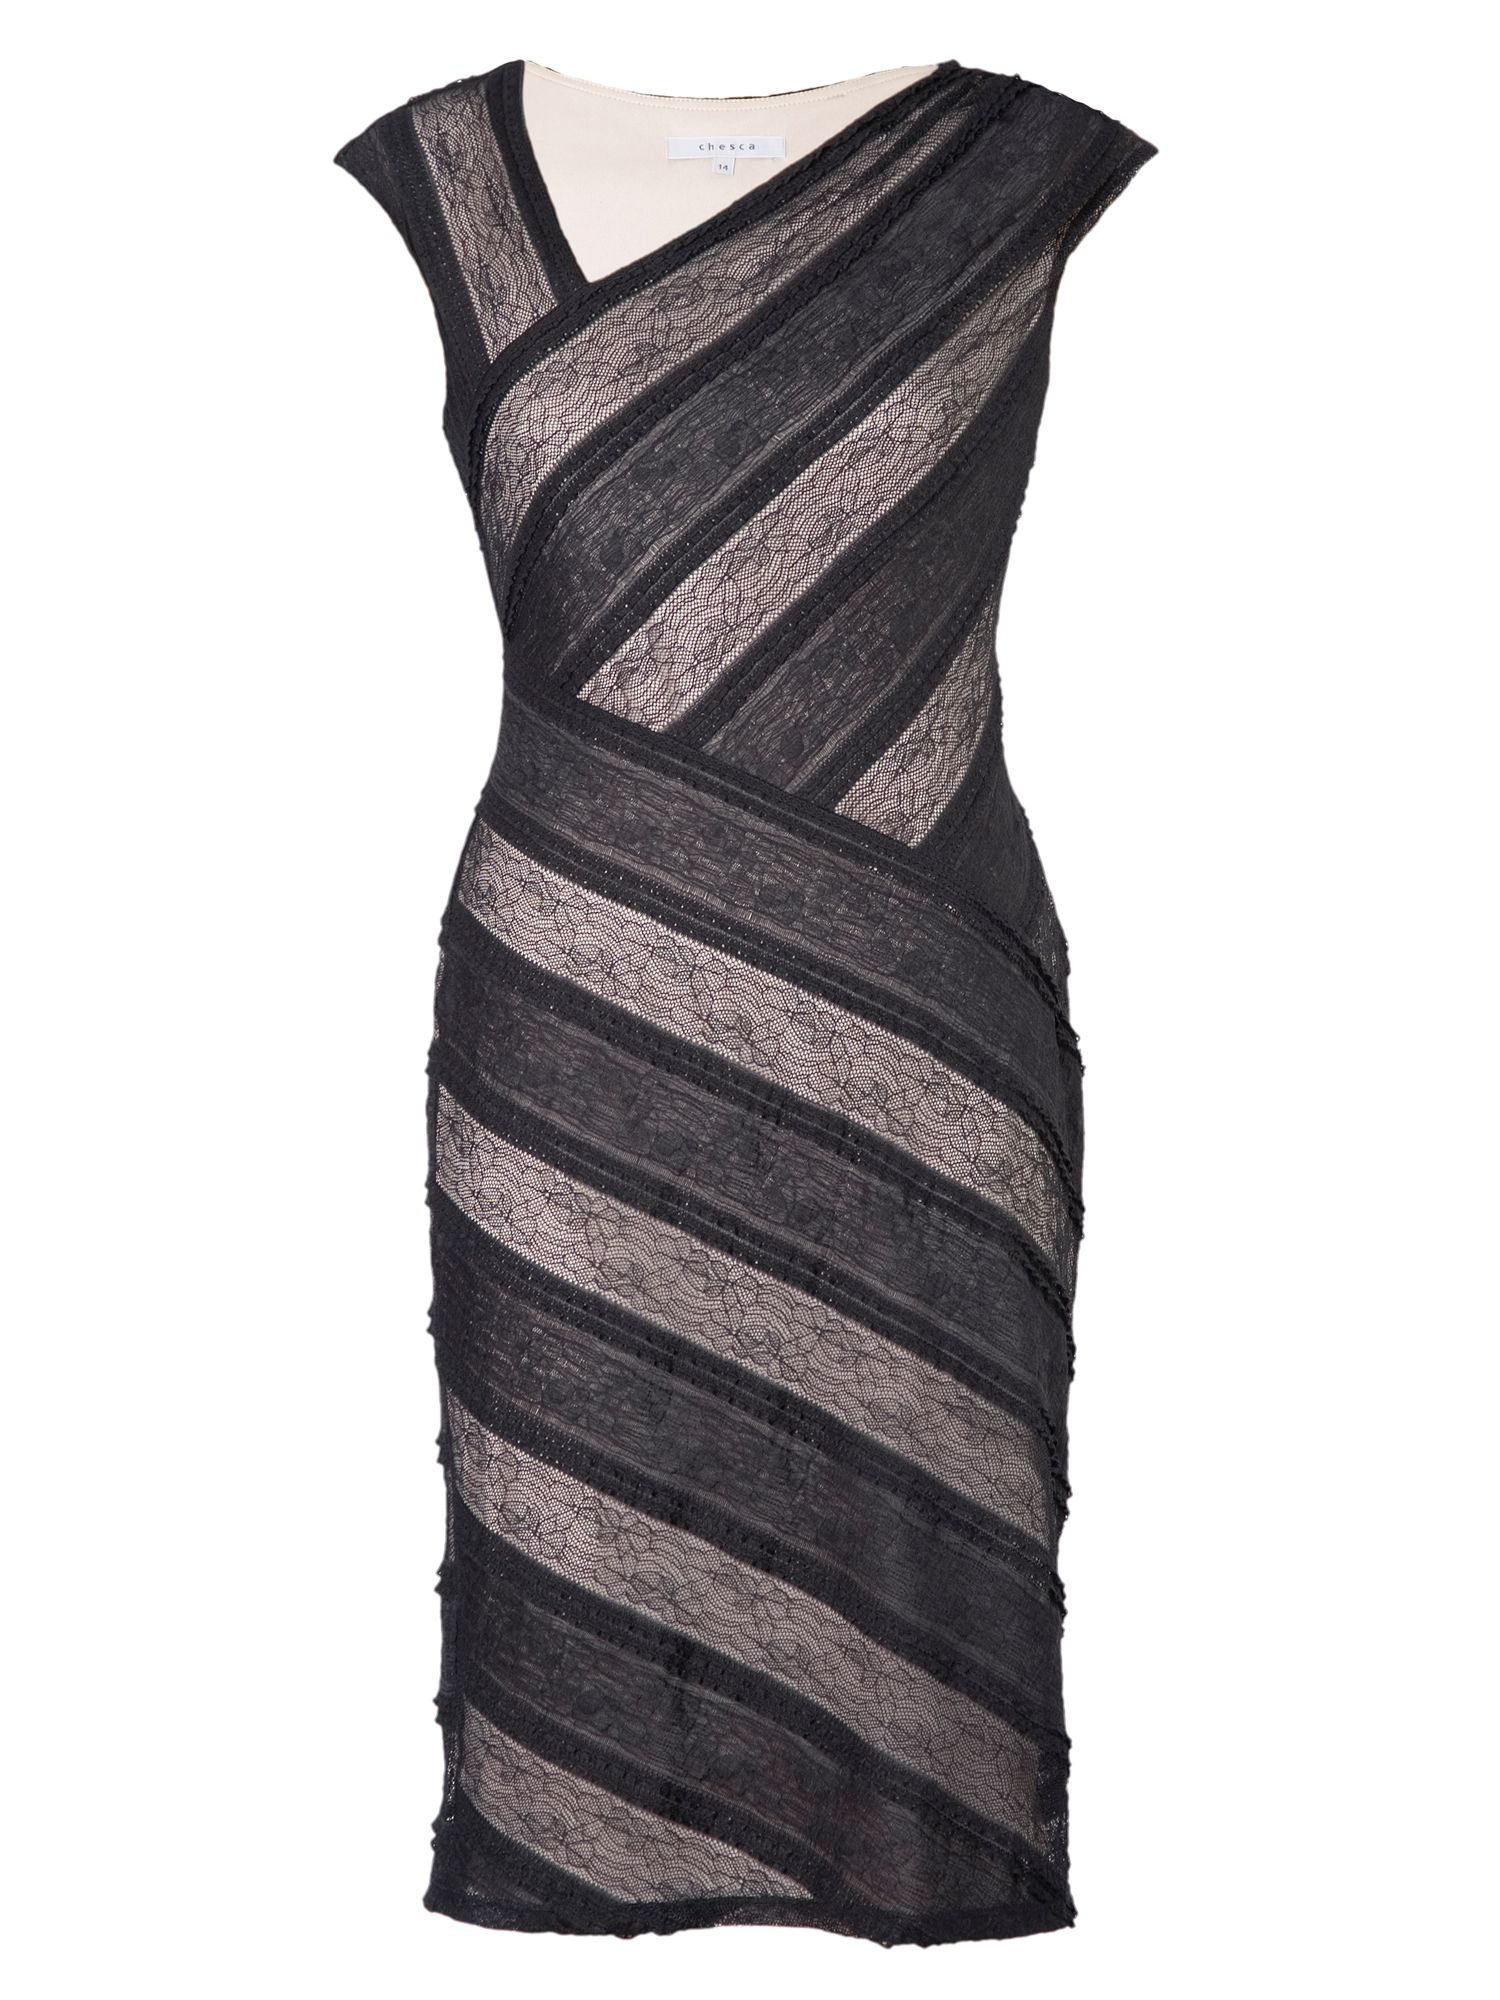 Striped sheer stretch lace dress